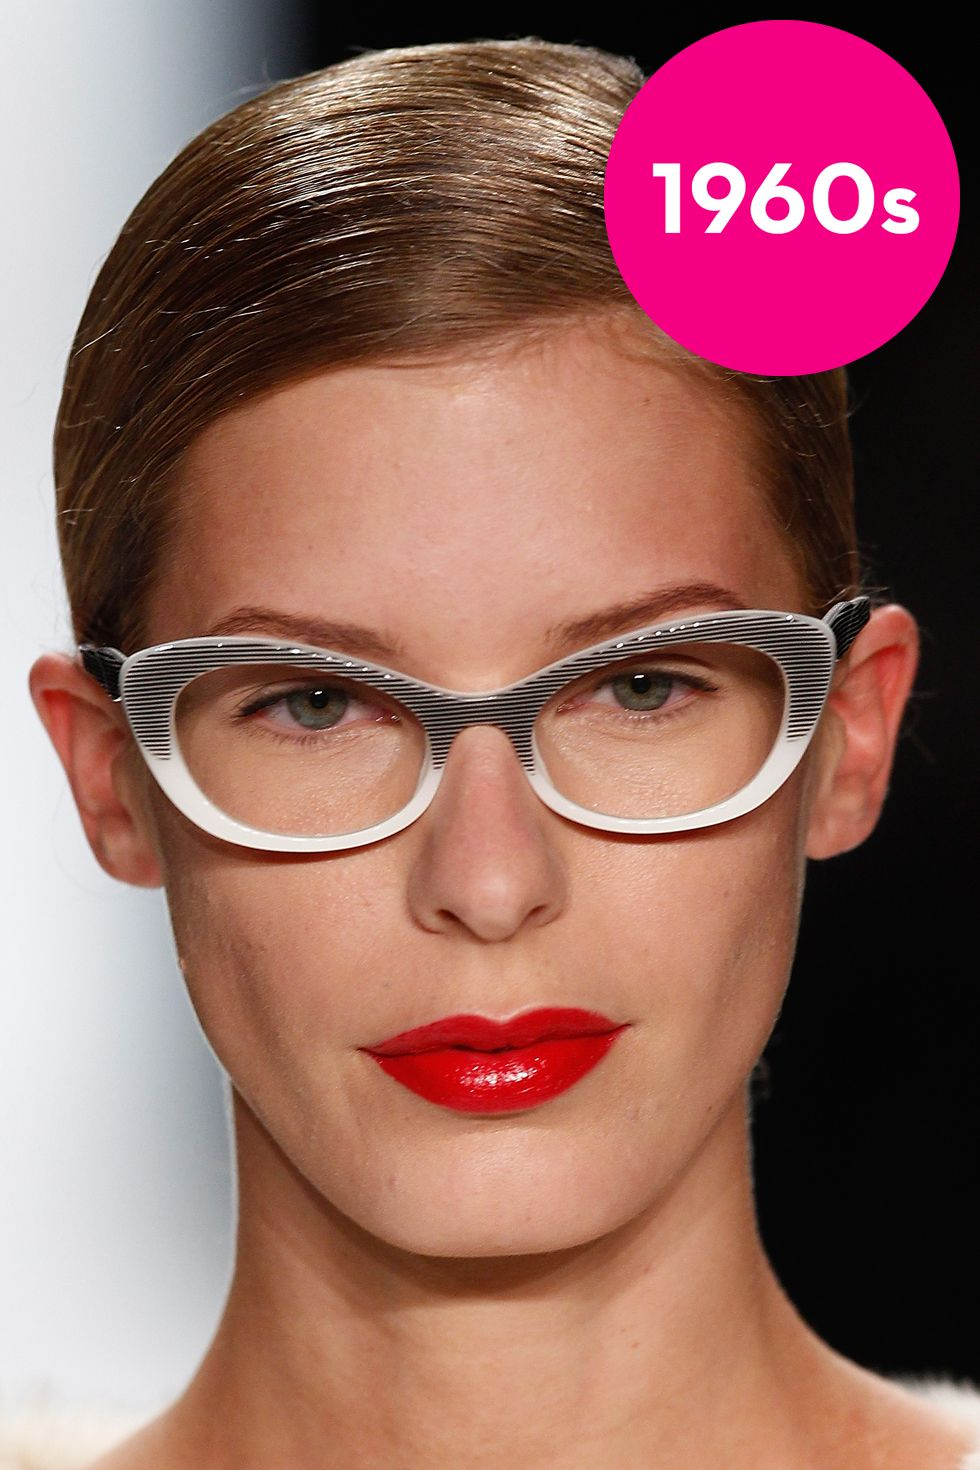 50 vintage beauty trends from '60s, '70s, '80s and '90s that are